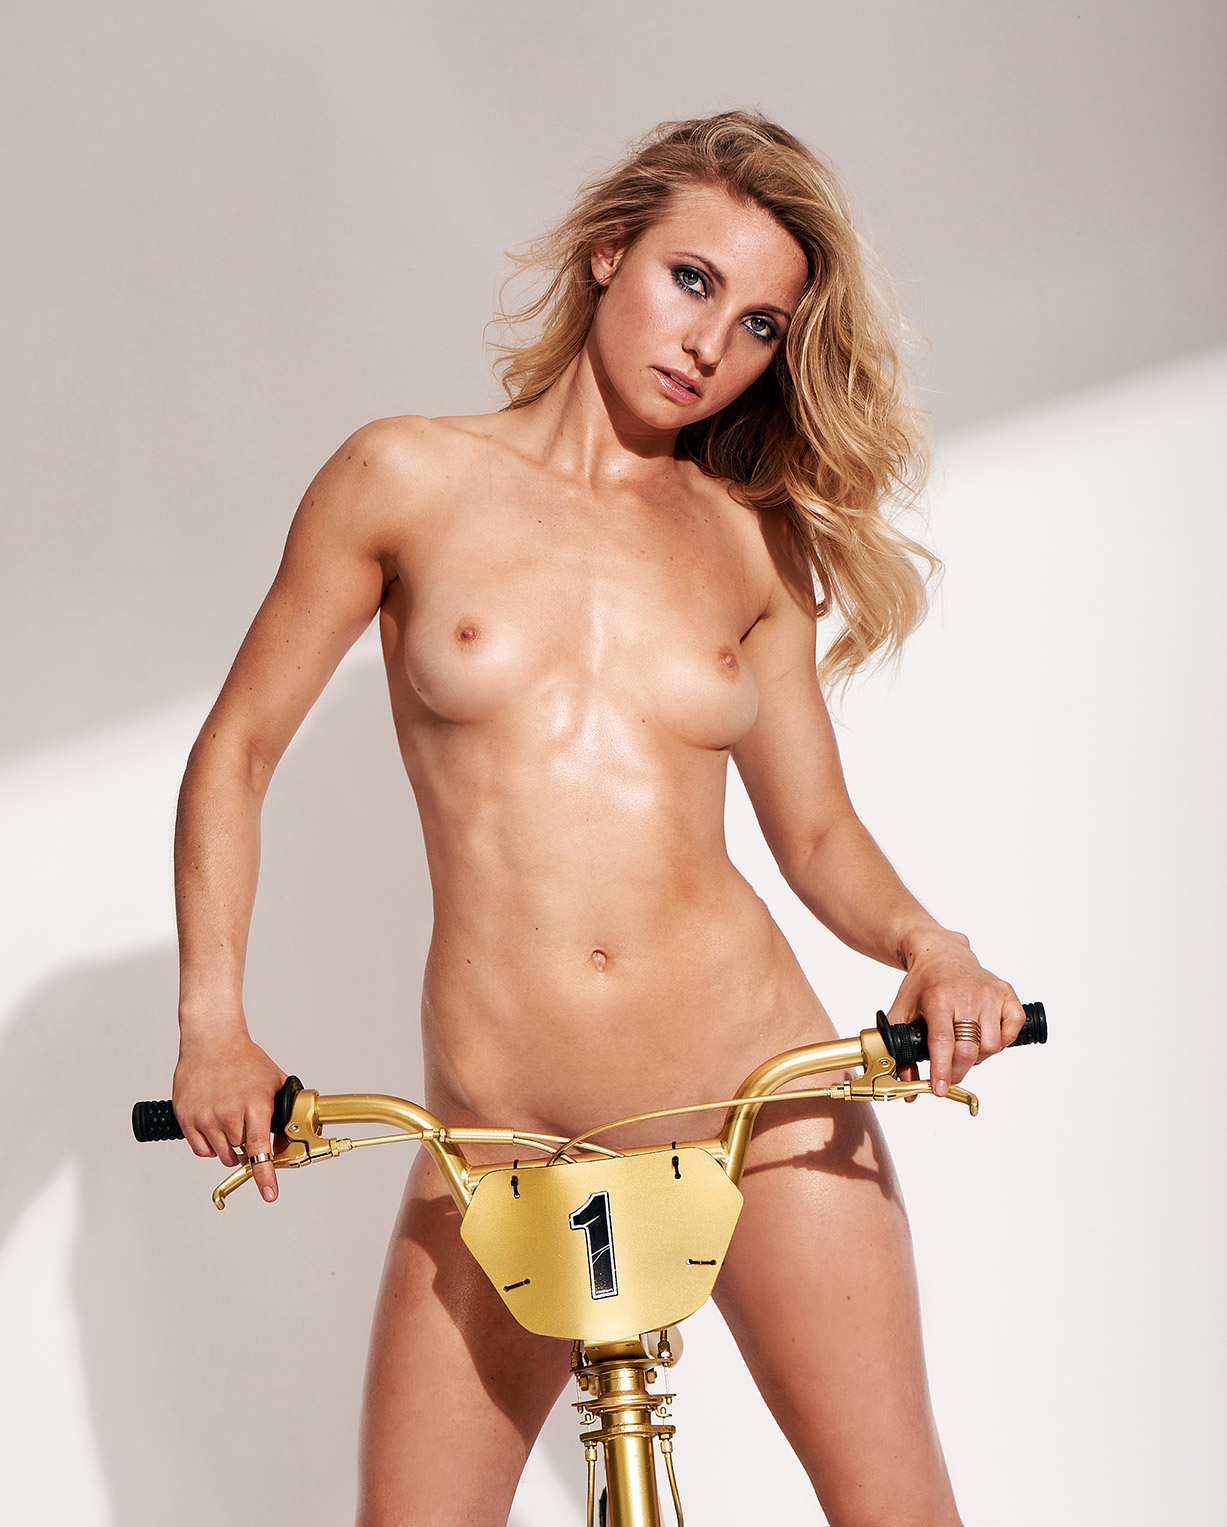 German-Nude-Olympic-Stars-for-Playboy-22.jpg